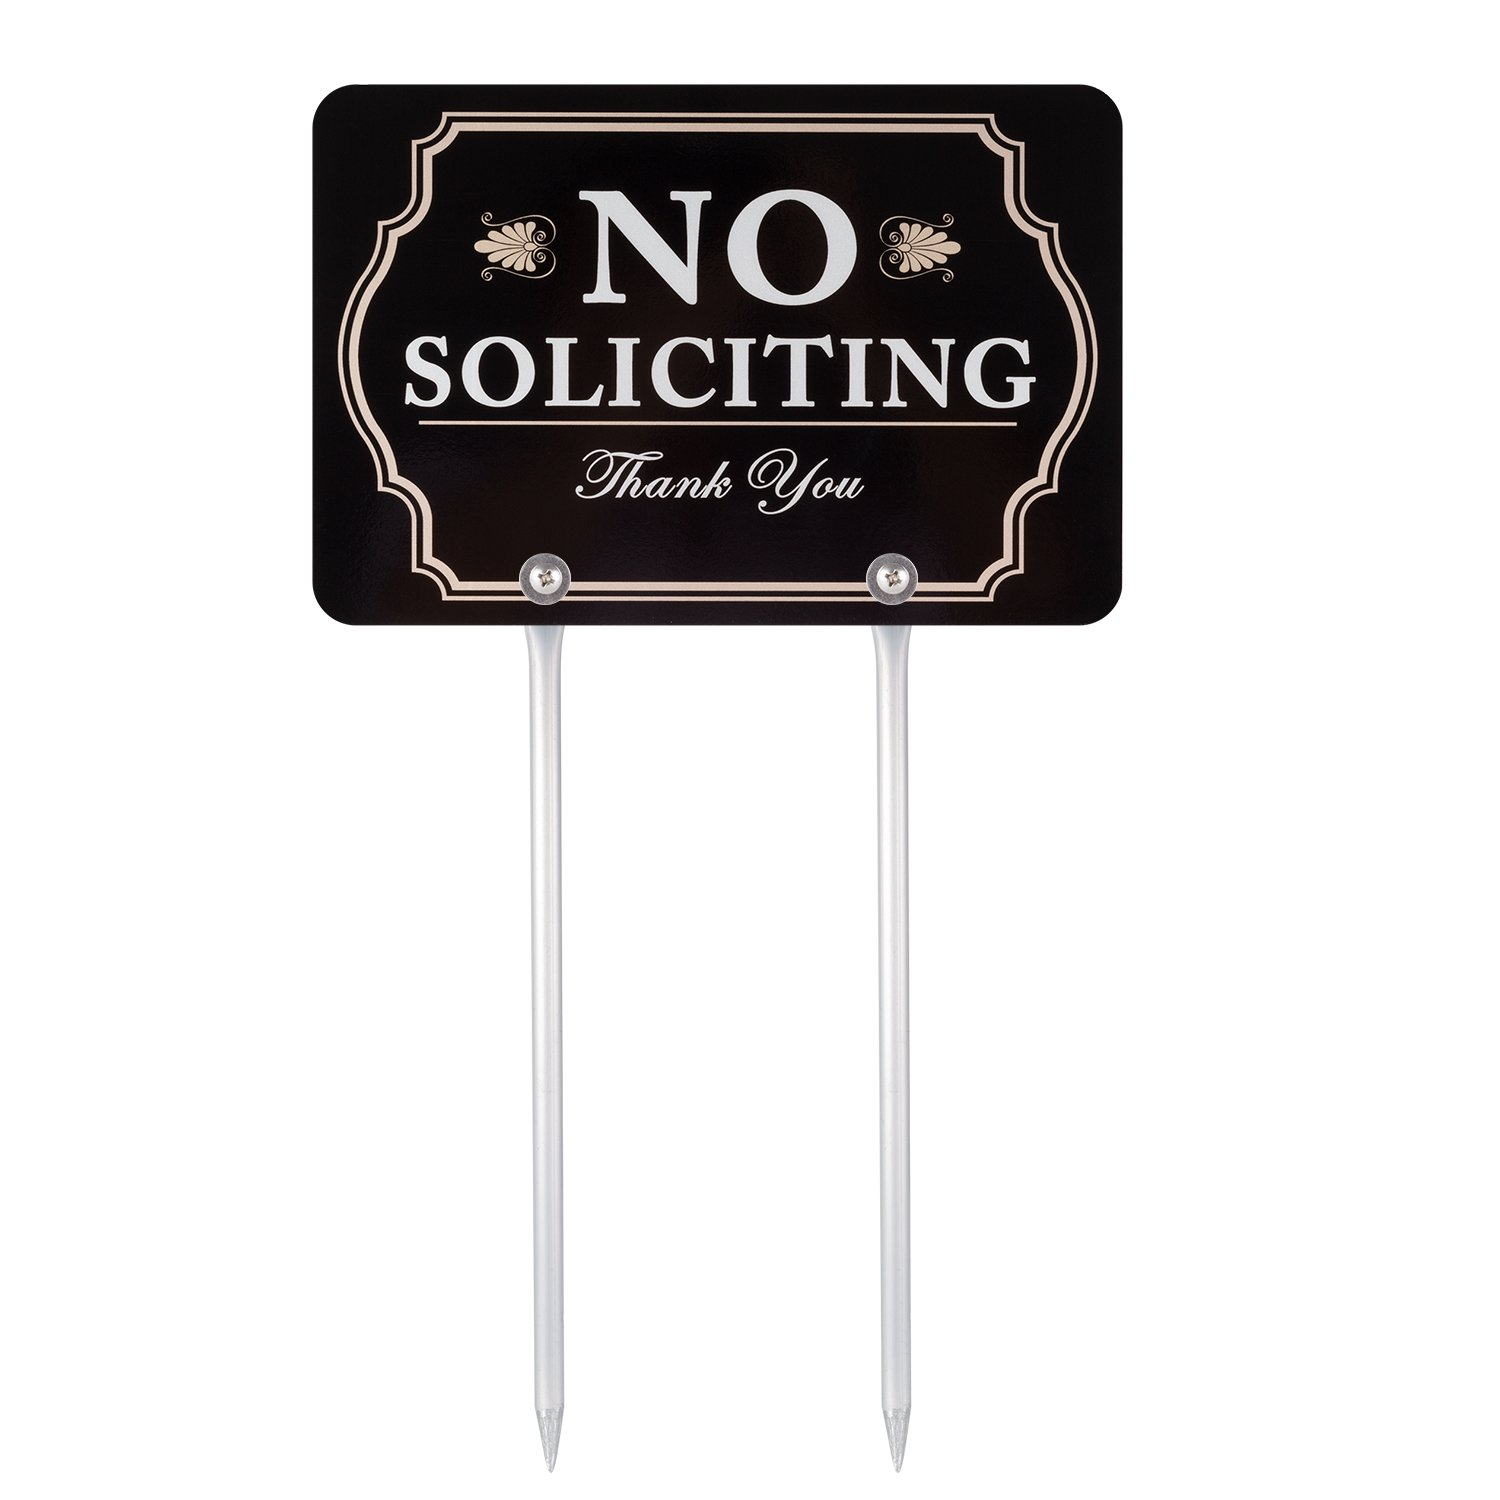 Kichwit No Soliciting Sign for Yard, Aluminum, All Metal Construction, Sign Measures 11.8'' x 7.9'', 14'' Long Metal Stakes Included